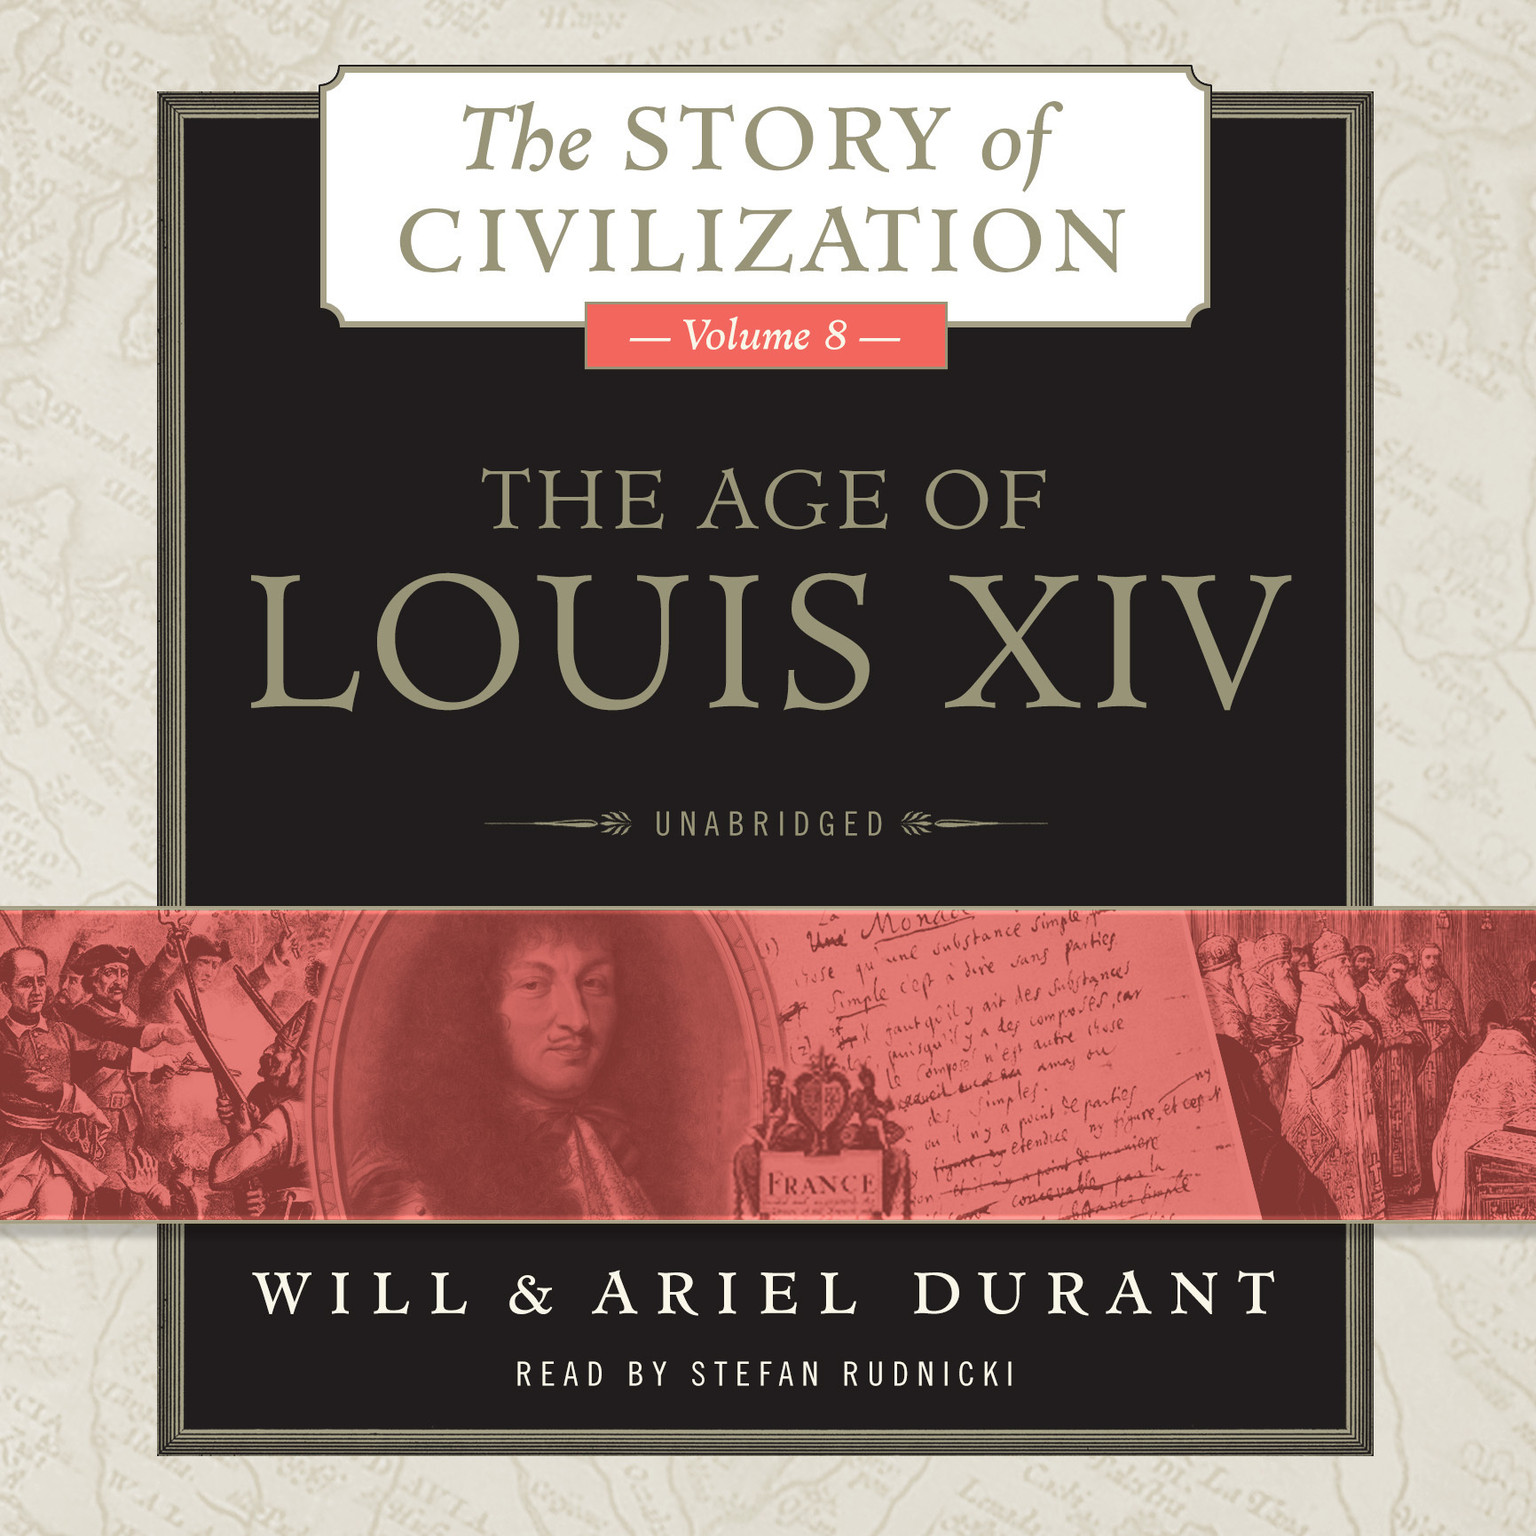 Printable The Age of Louis XIV: A History of European Civilization in the Period of Pascal, Molière, Cromwell, Milton, Peter the Great, Newton, and Spinoza, 1648–1715 Audiobook Cover Art